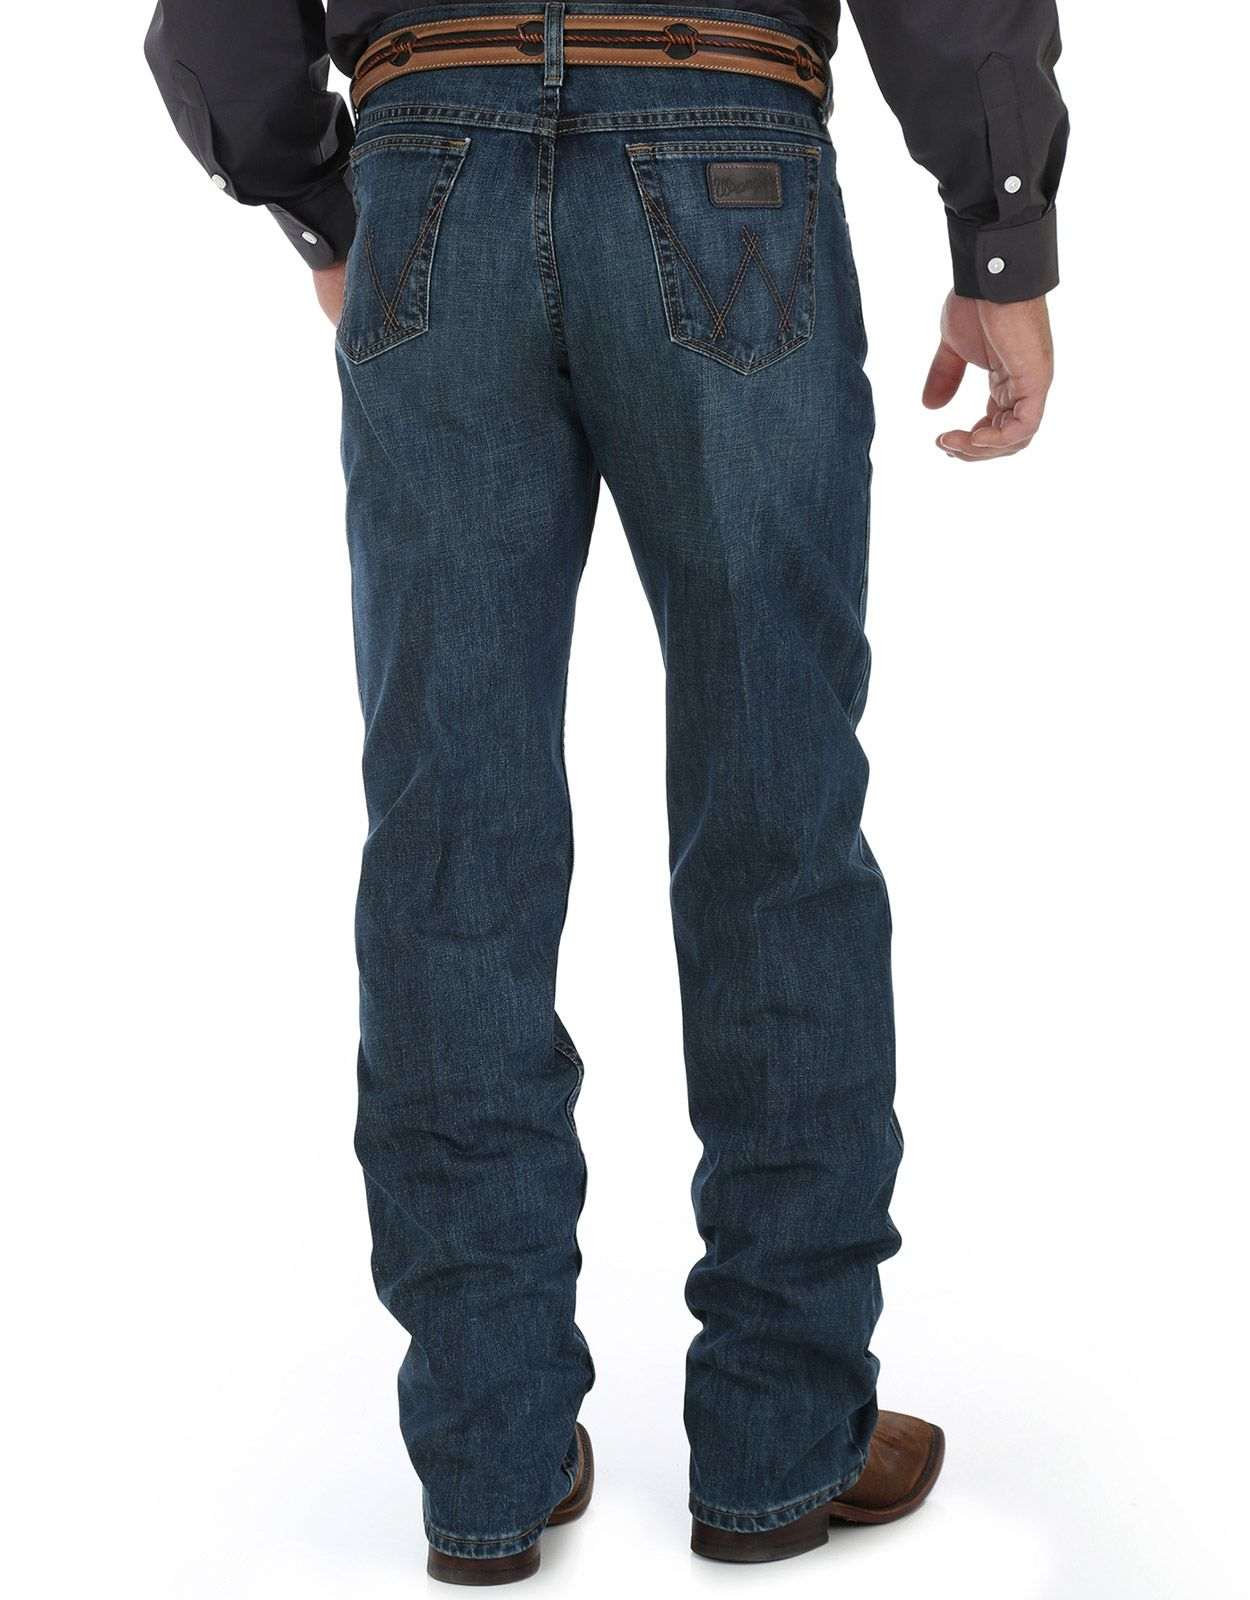 Wrangler Men's 01 Low Rise Relaxed Fit Boot Cut Jeans - River Wash